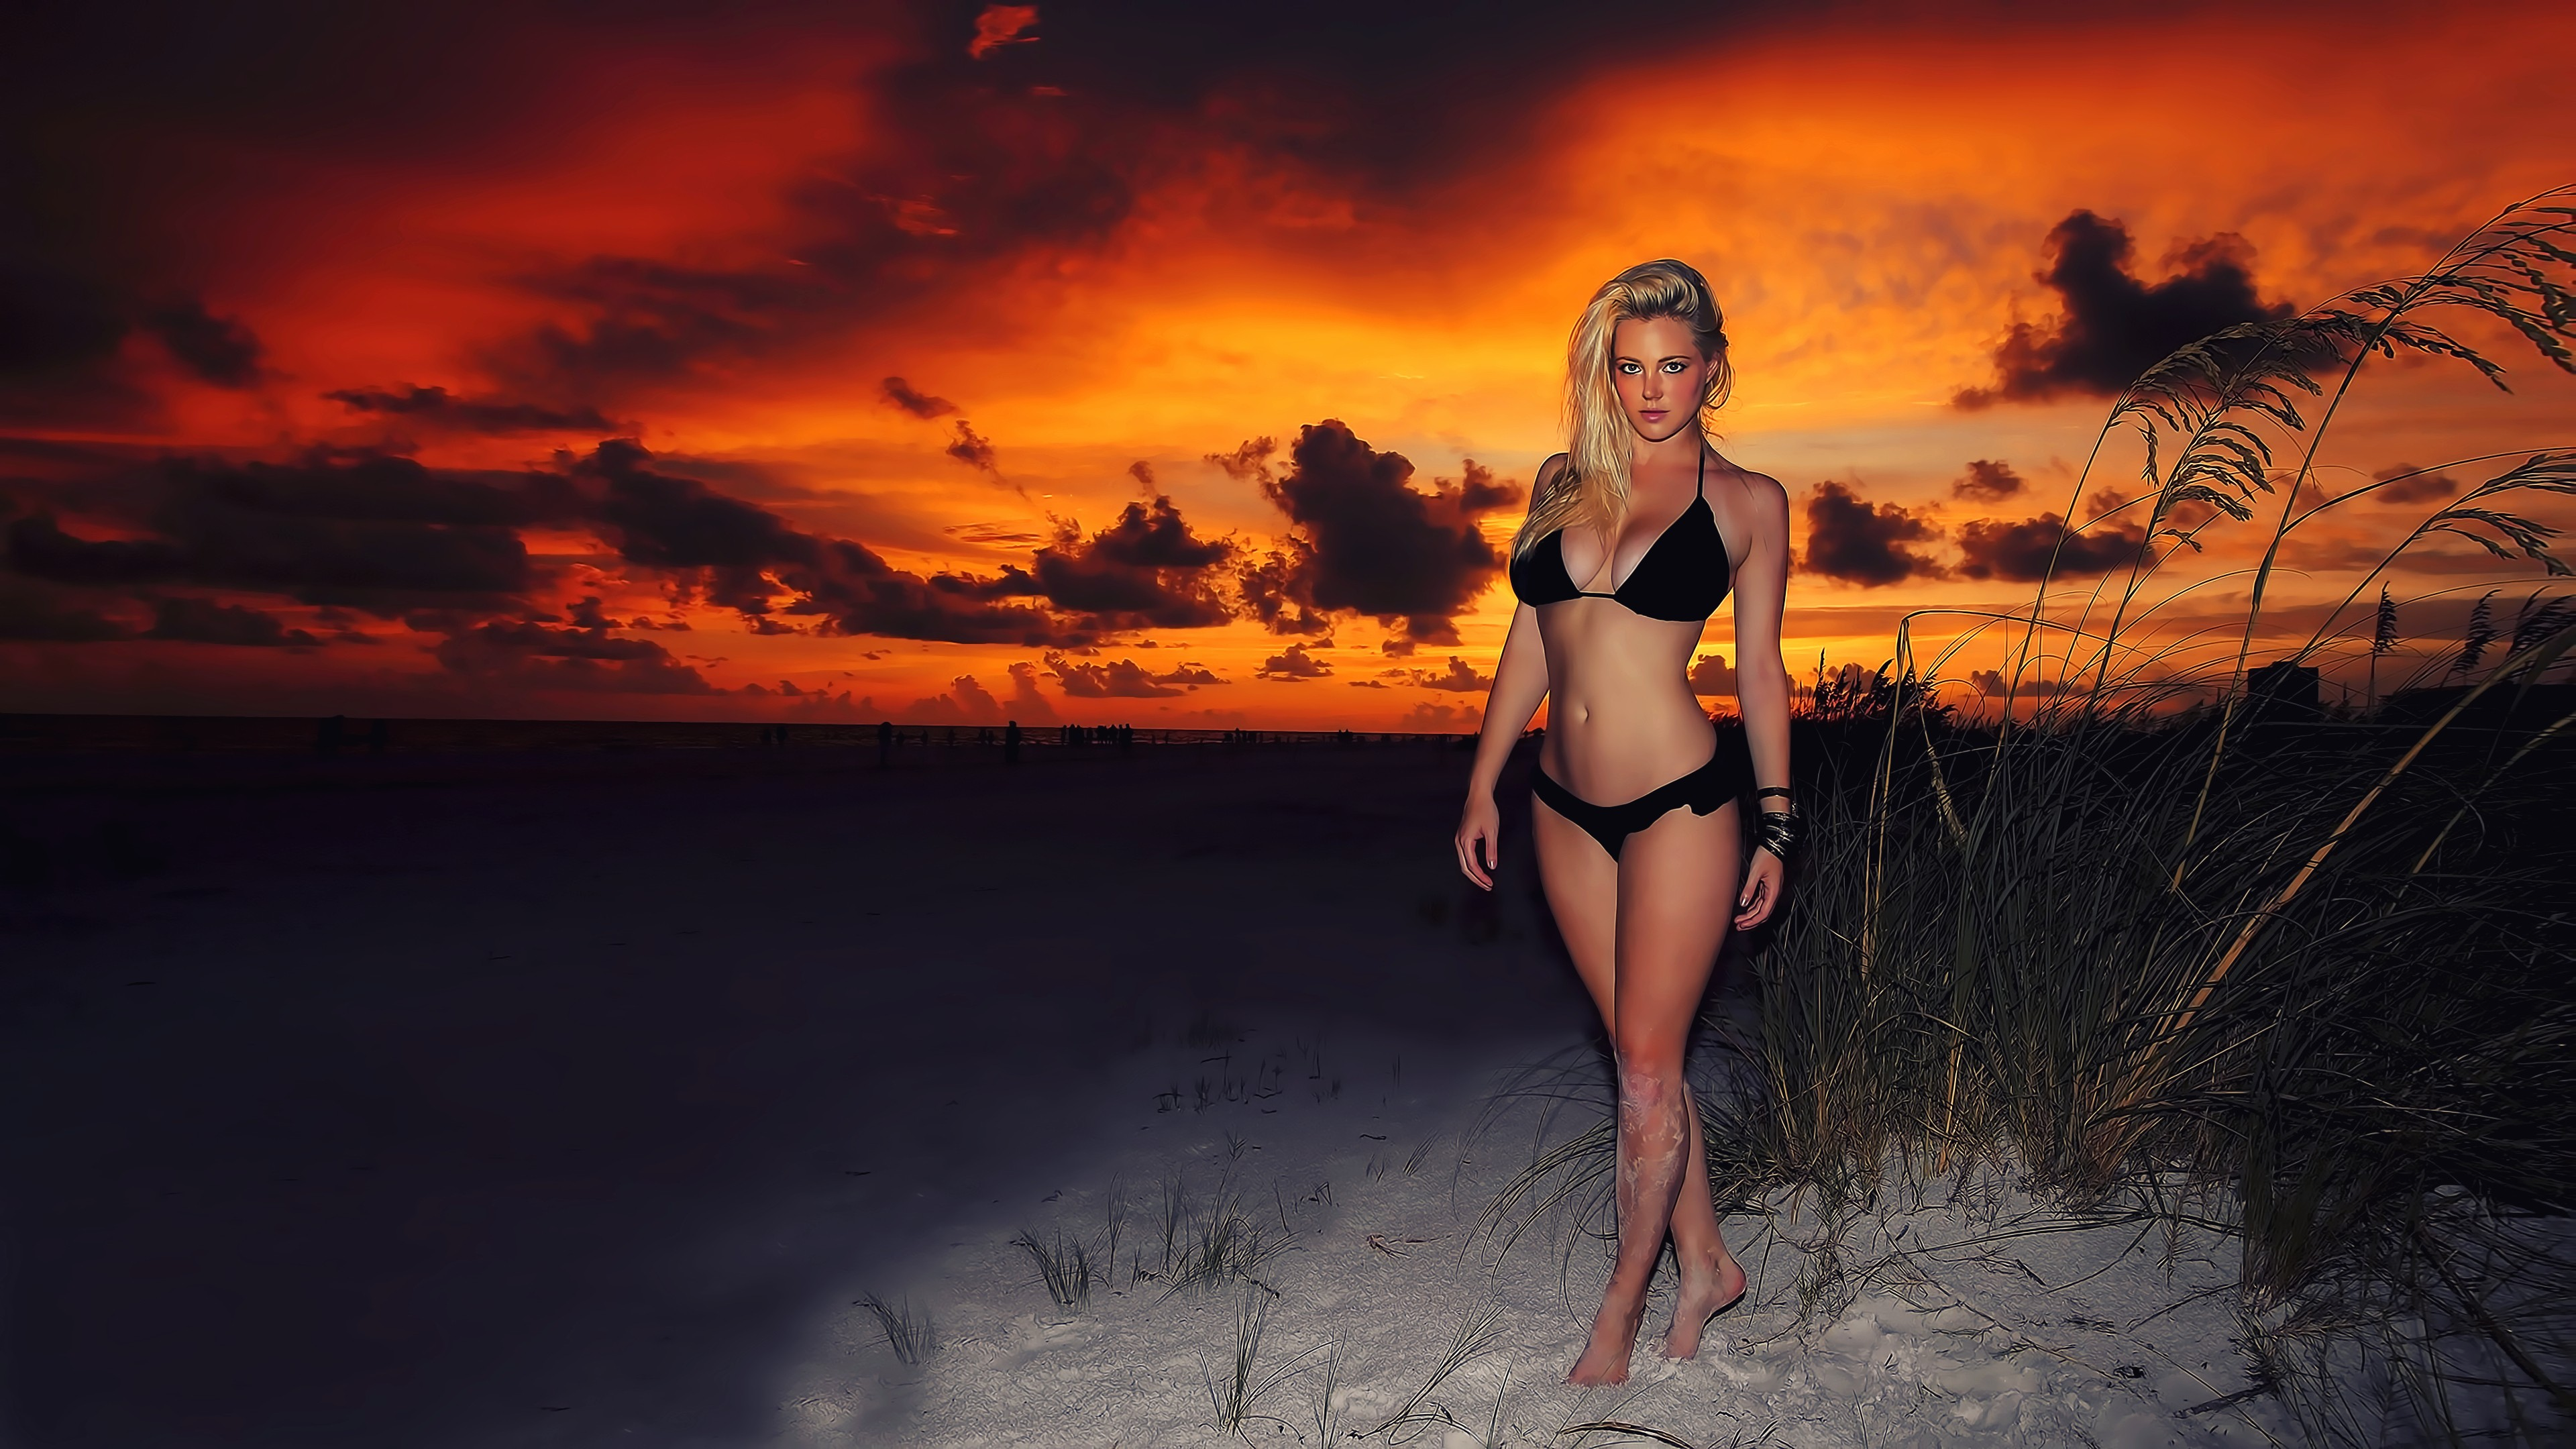 Anime Beach Wallpaper Download 3840x2160 Black Bikini Sunset Blonde Curvy